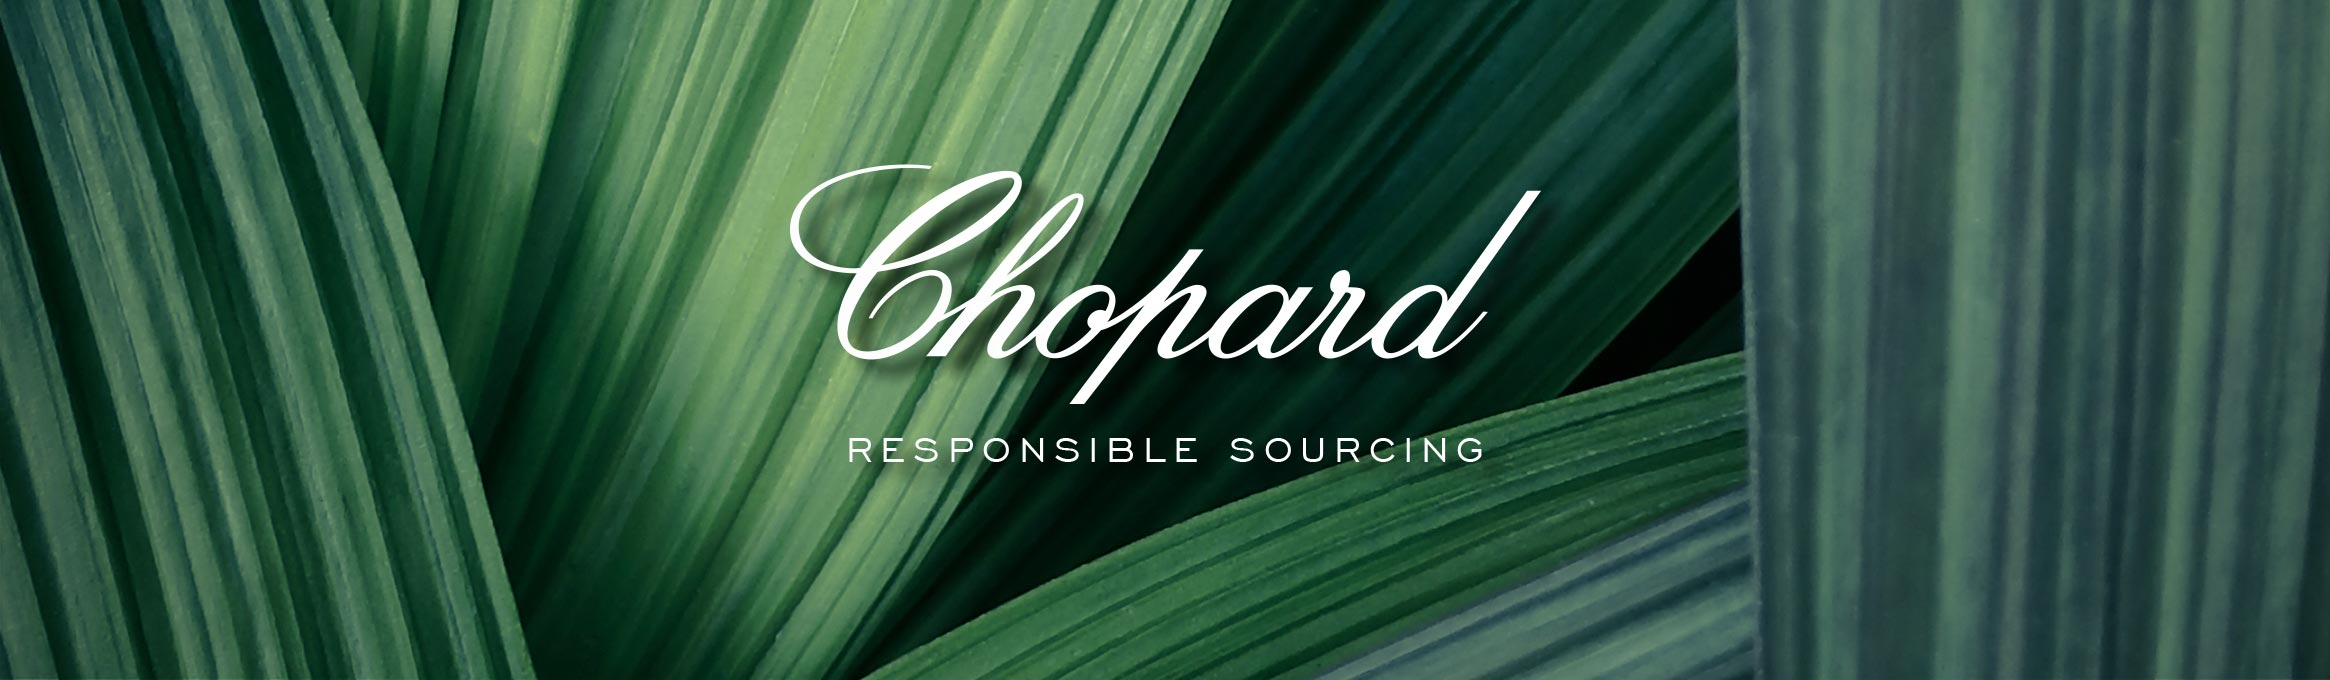 Chopard logo with responsible sourcing in bold letter, on a green leafy background